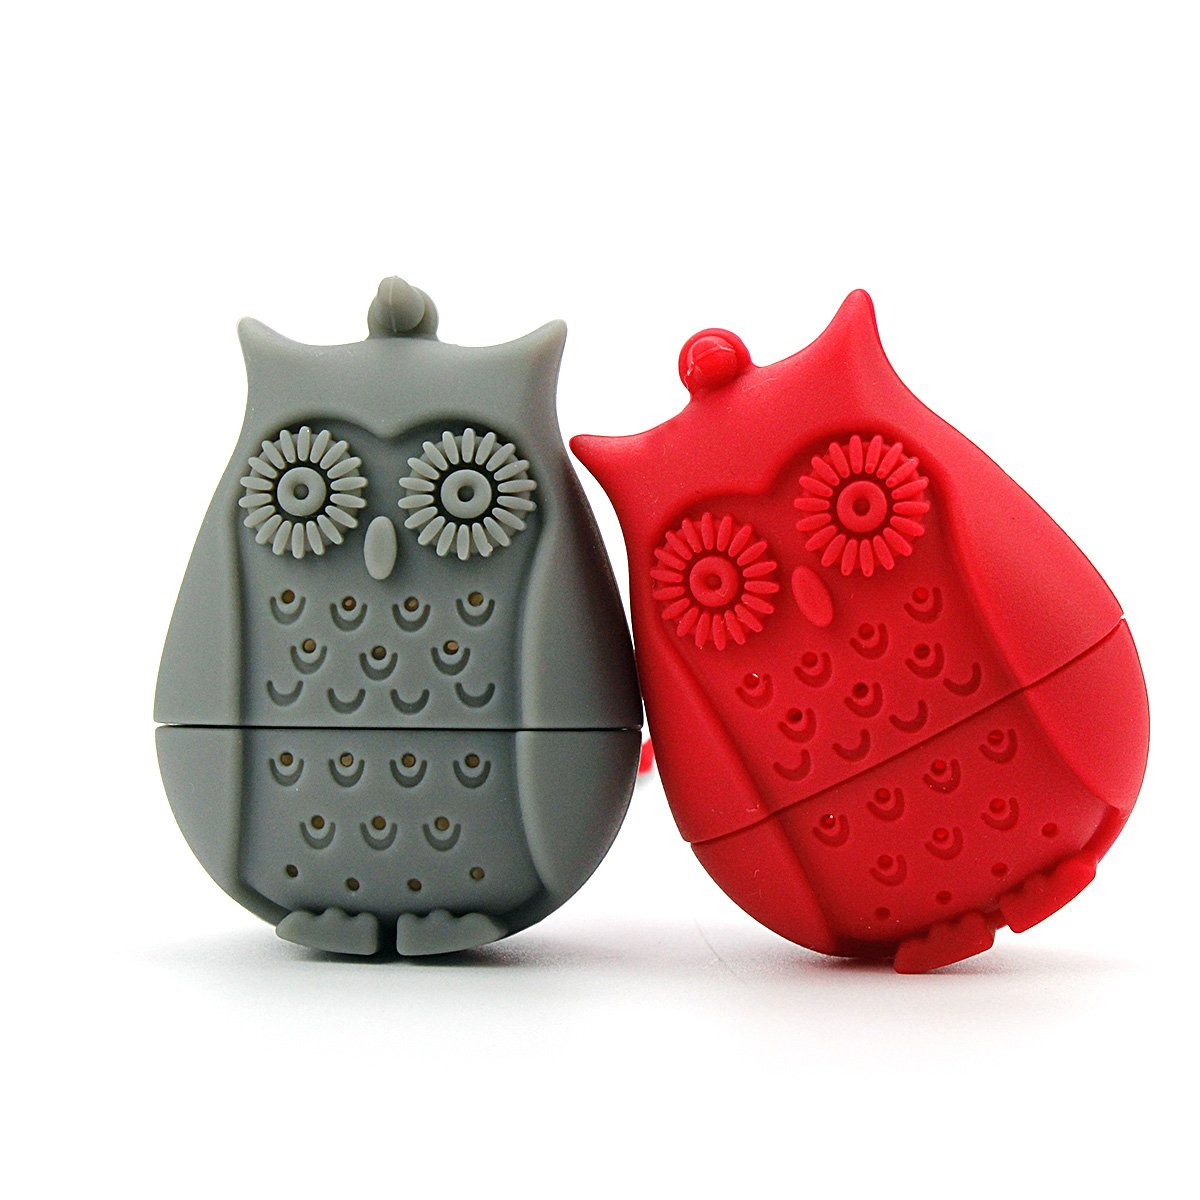 i-JCT Owl Tea Ball Infuser Strainer Owl Silicone Tea Bag Filter 2PCS (BLUE+ROSE) i-JCT CO. LTD